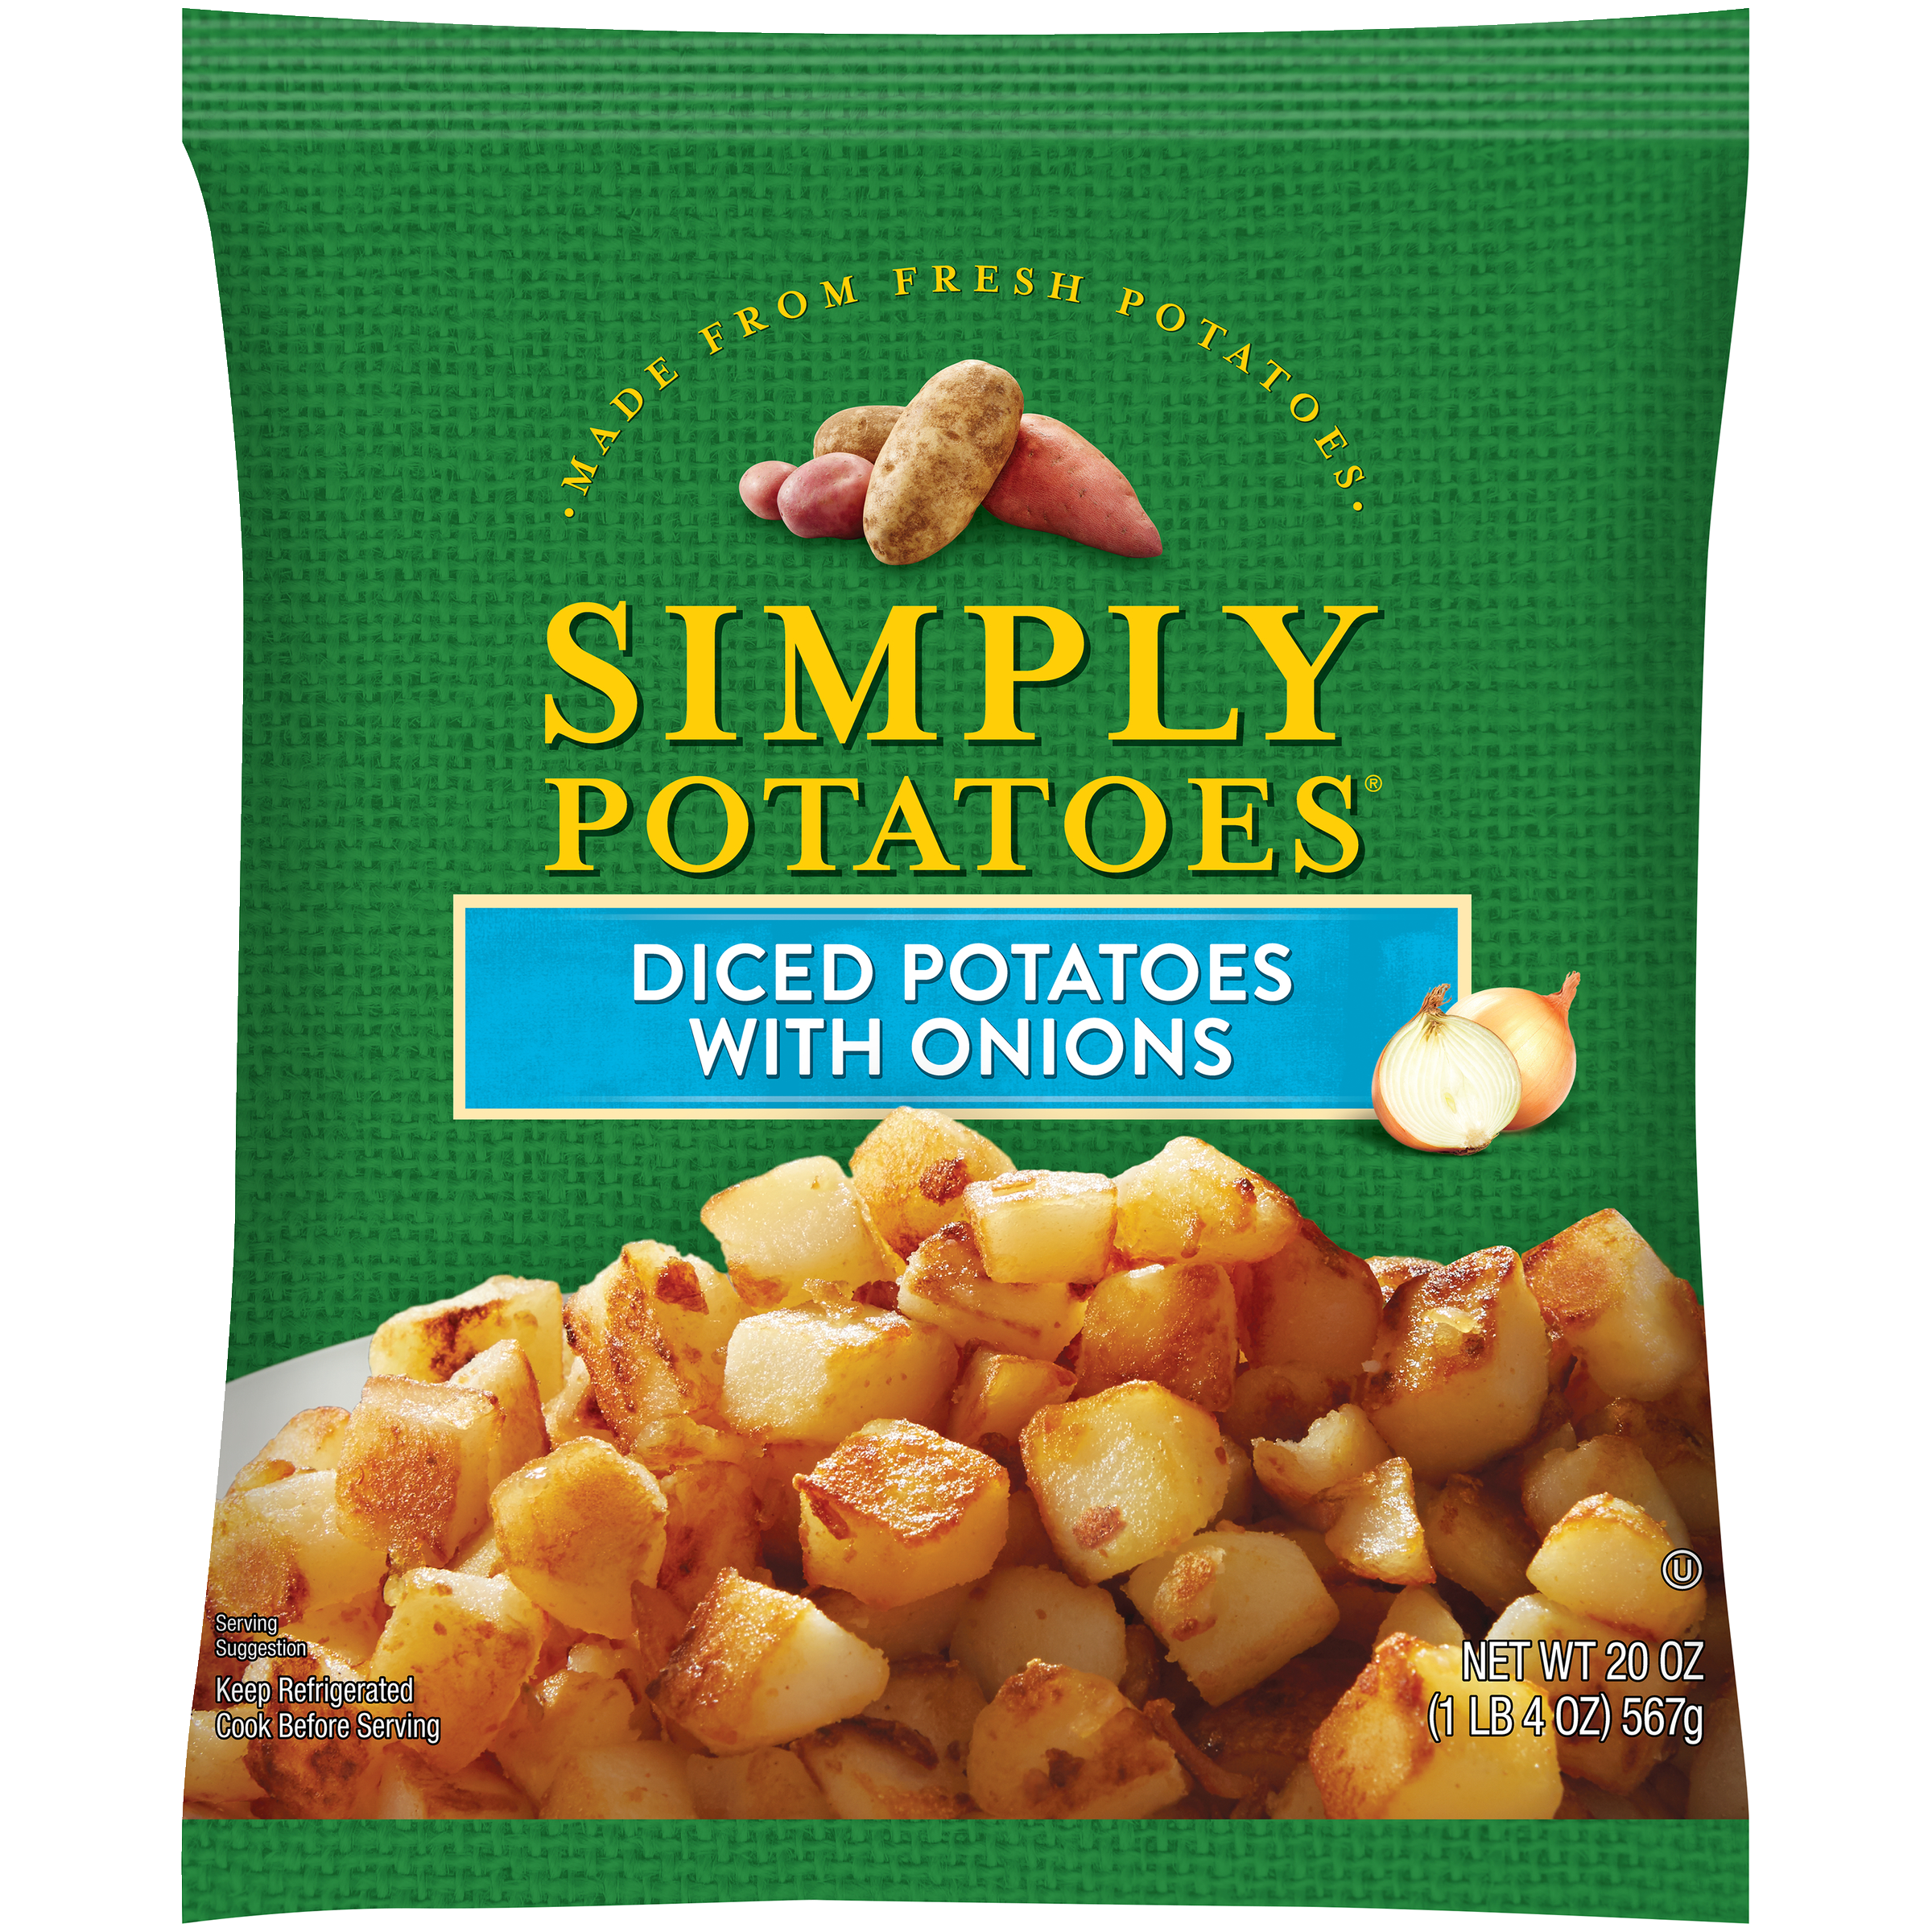 photo of Simply Potatoes Diced Potatoes with Onions product